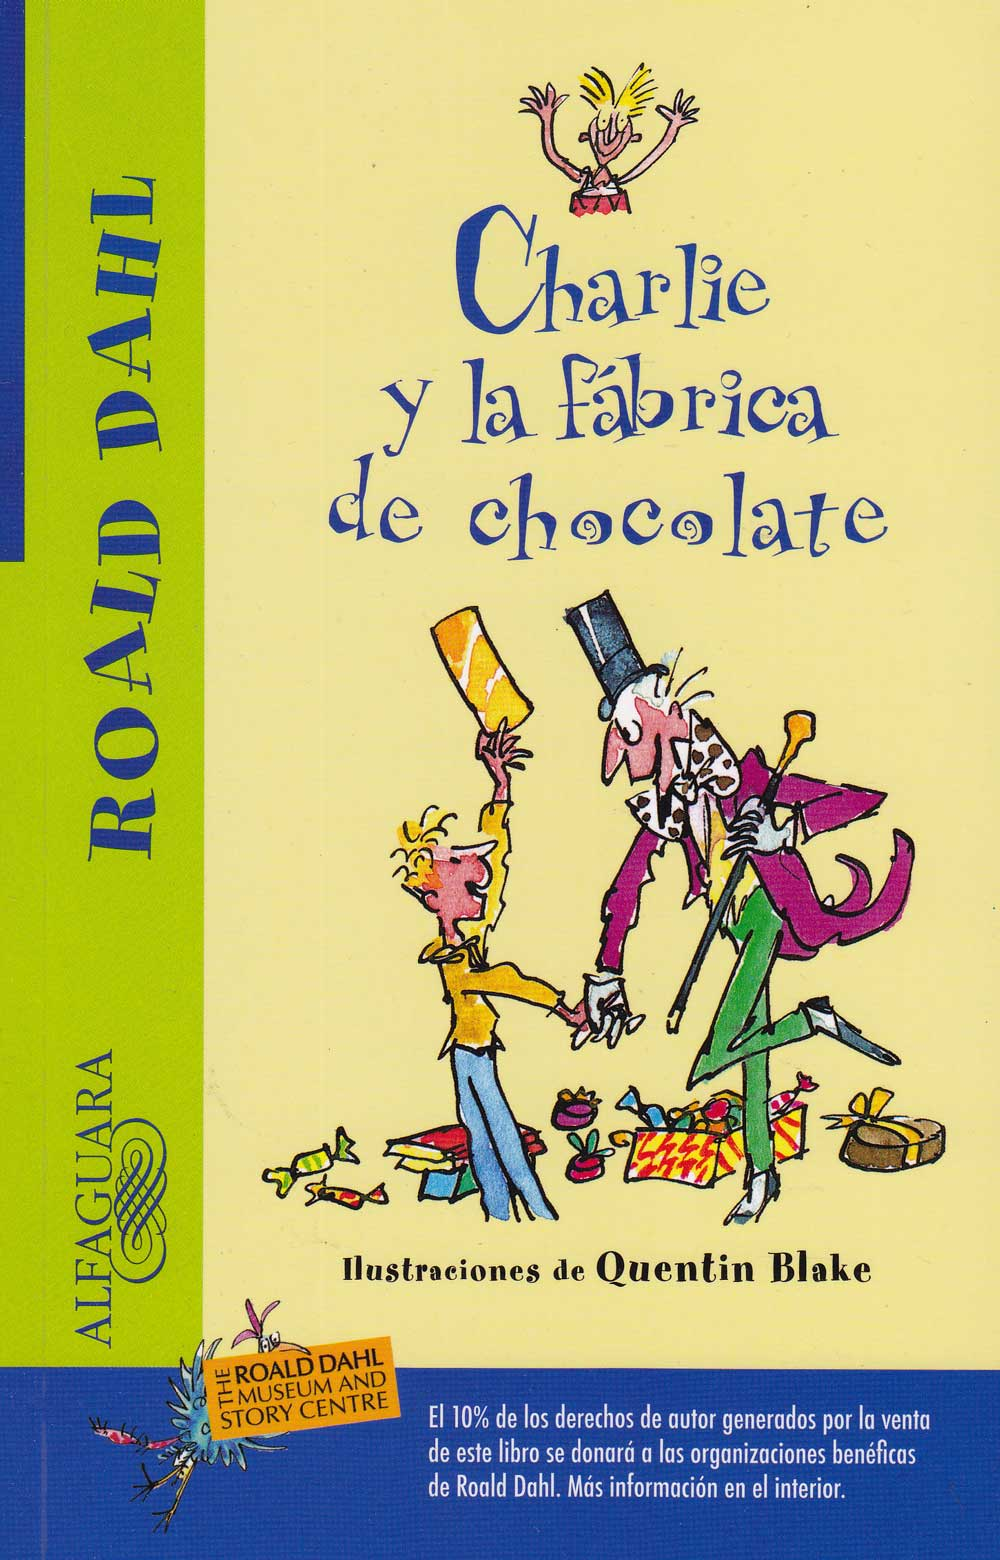 Roald Dahl Collection, Rey Del Sol, Del Sol Books, Del Sol University